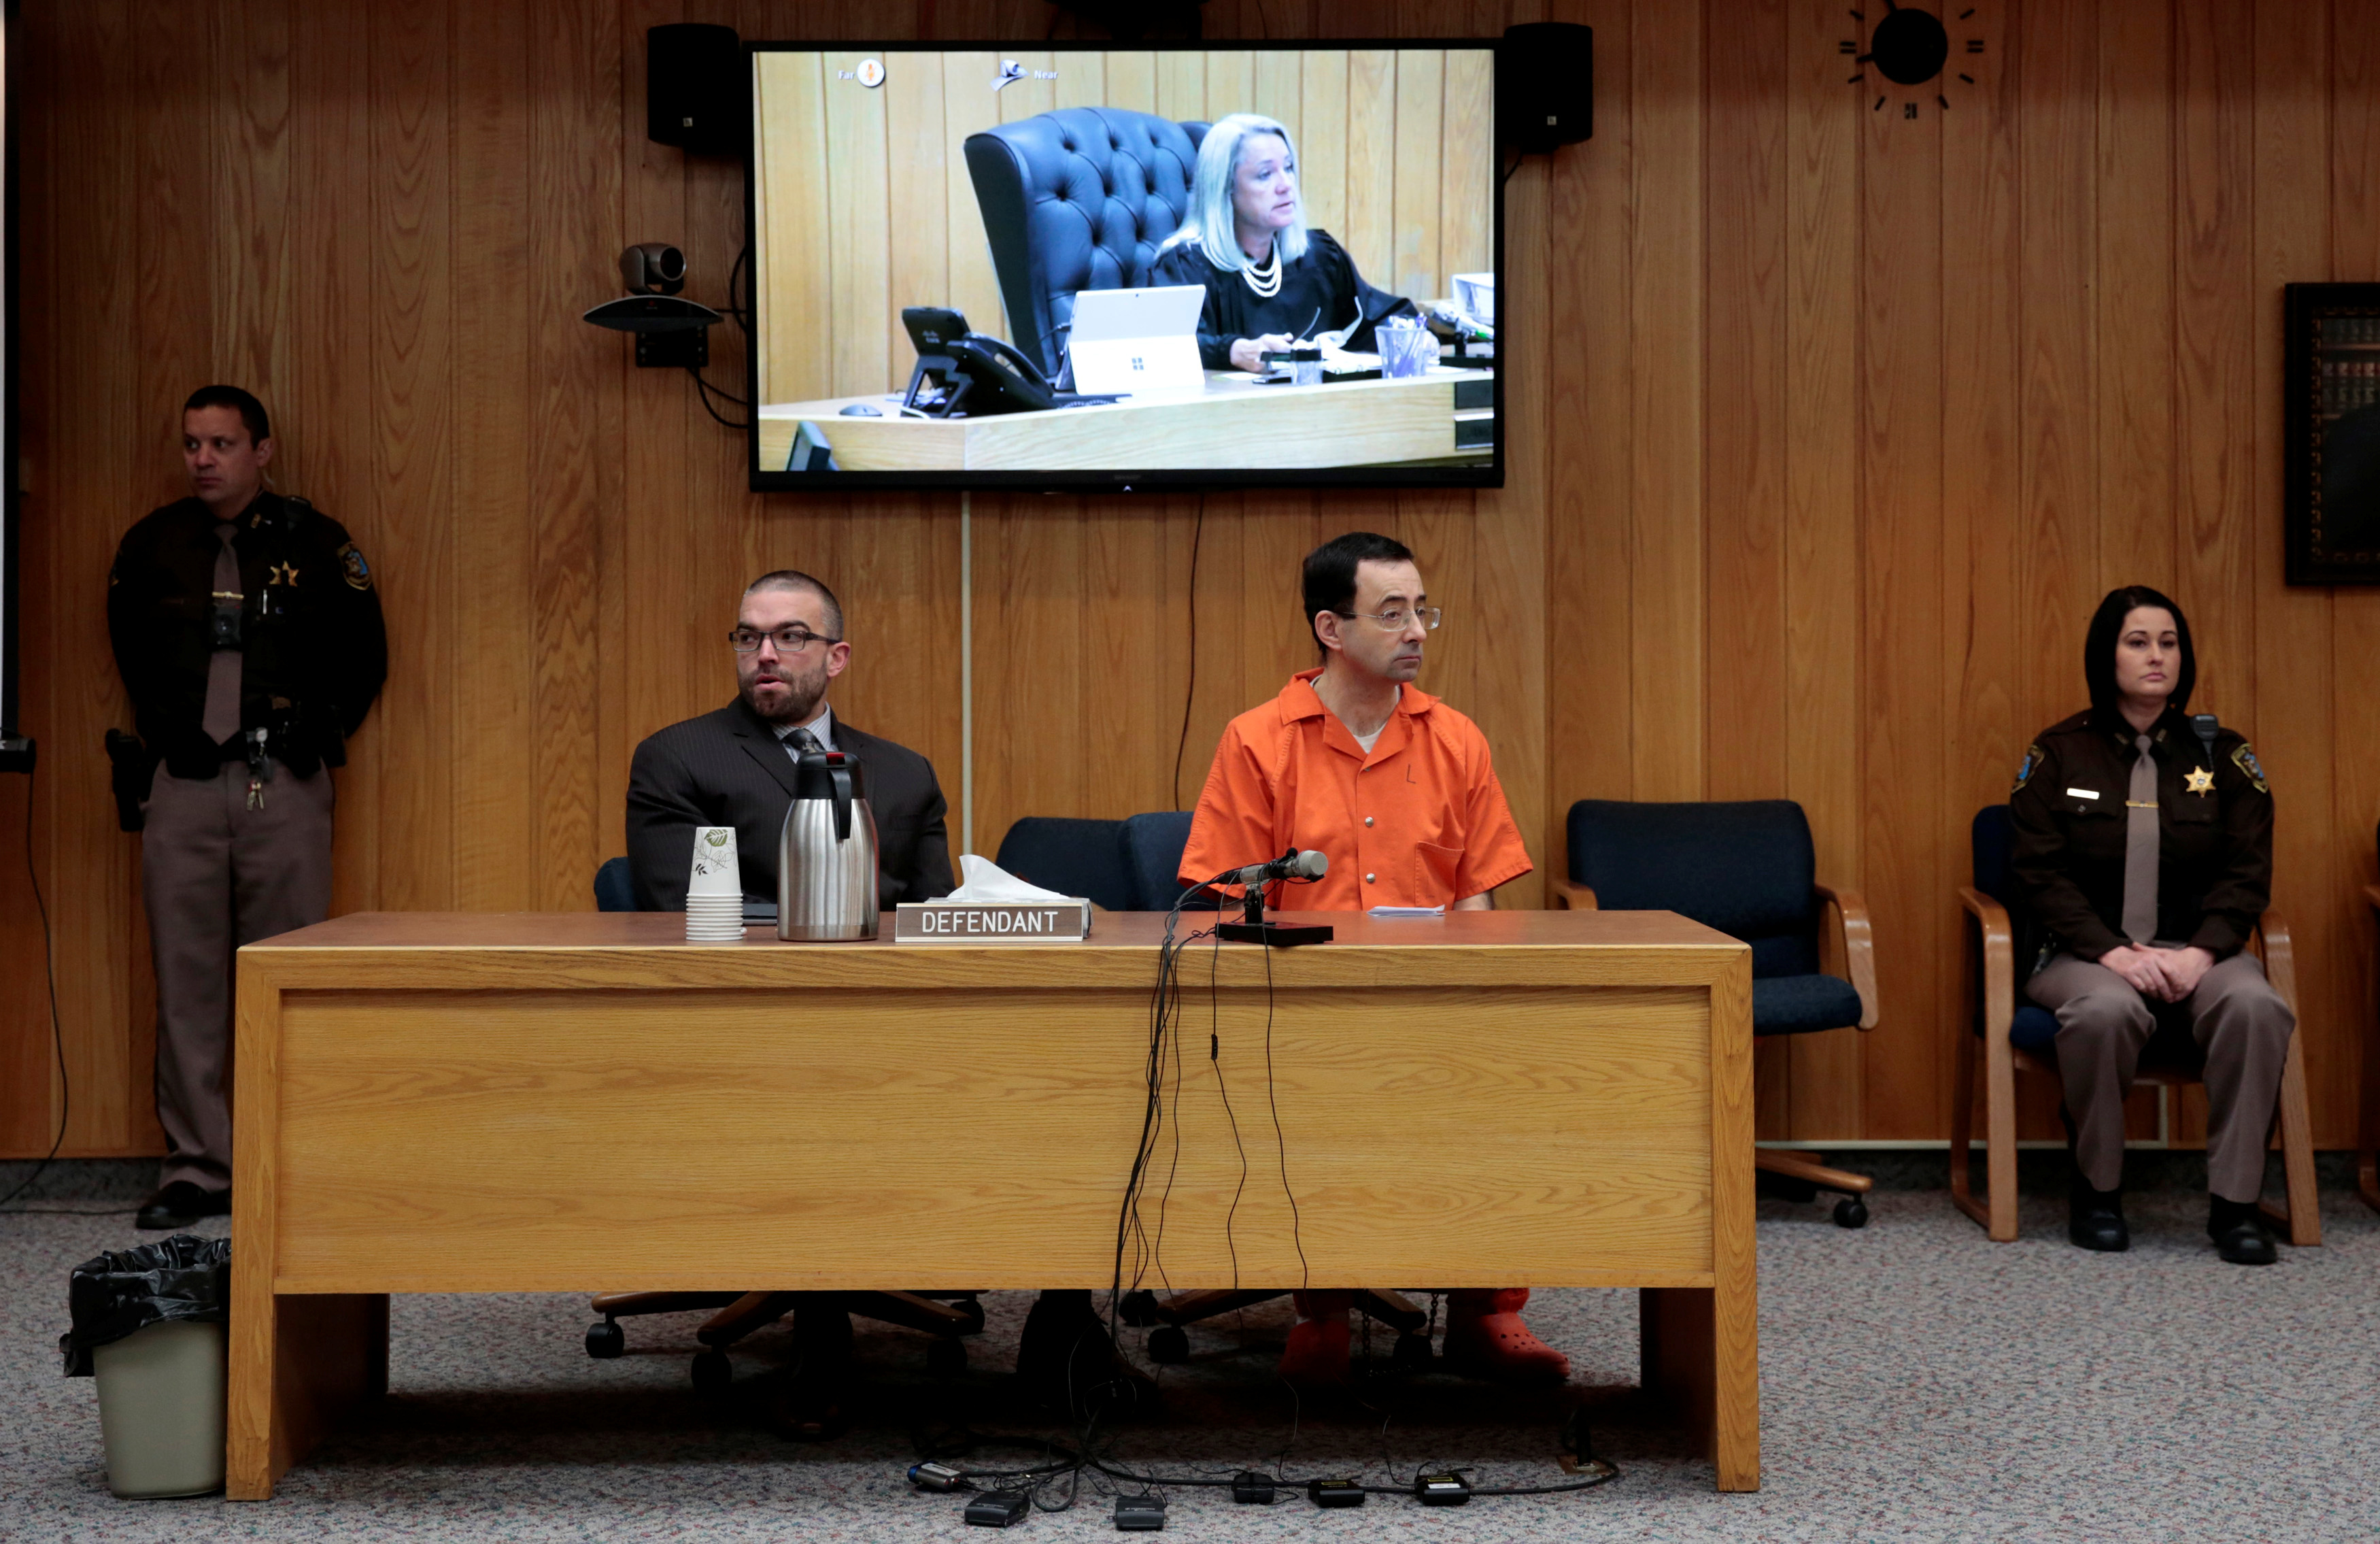 Larry Nassar, a former team USA Gymnastics doctor who pleaded guilty in November 2017 to sexual assault charges, and his defense attorney Matt Newburg listen to Judge Janice Cunningham during Nassar's sentencing hearing in the Eaton County Court in Charlotte, Michigan, U.S., February 5, 2018. REUTERS/Rebecca Cook